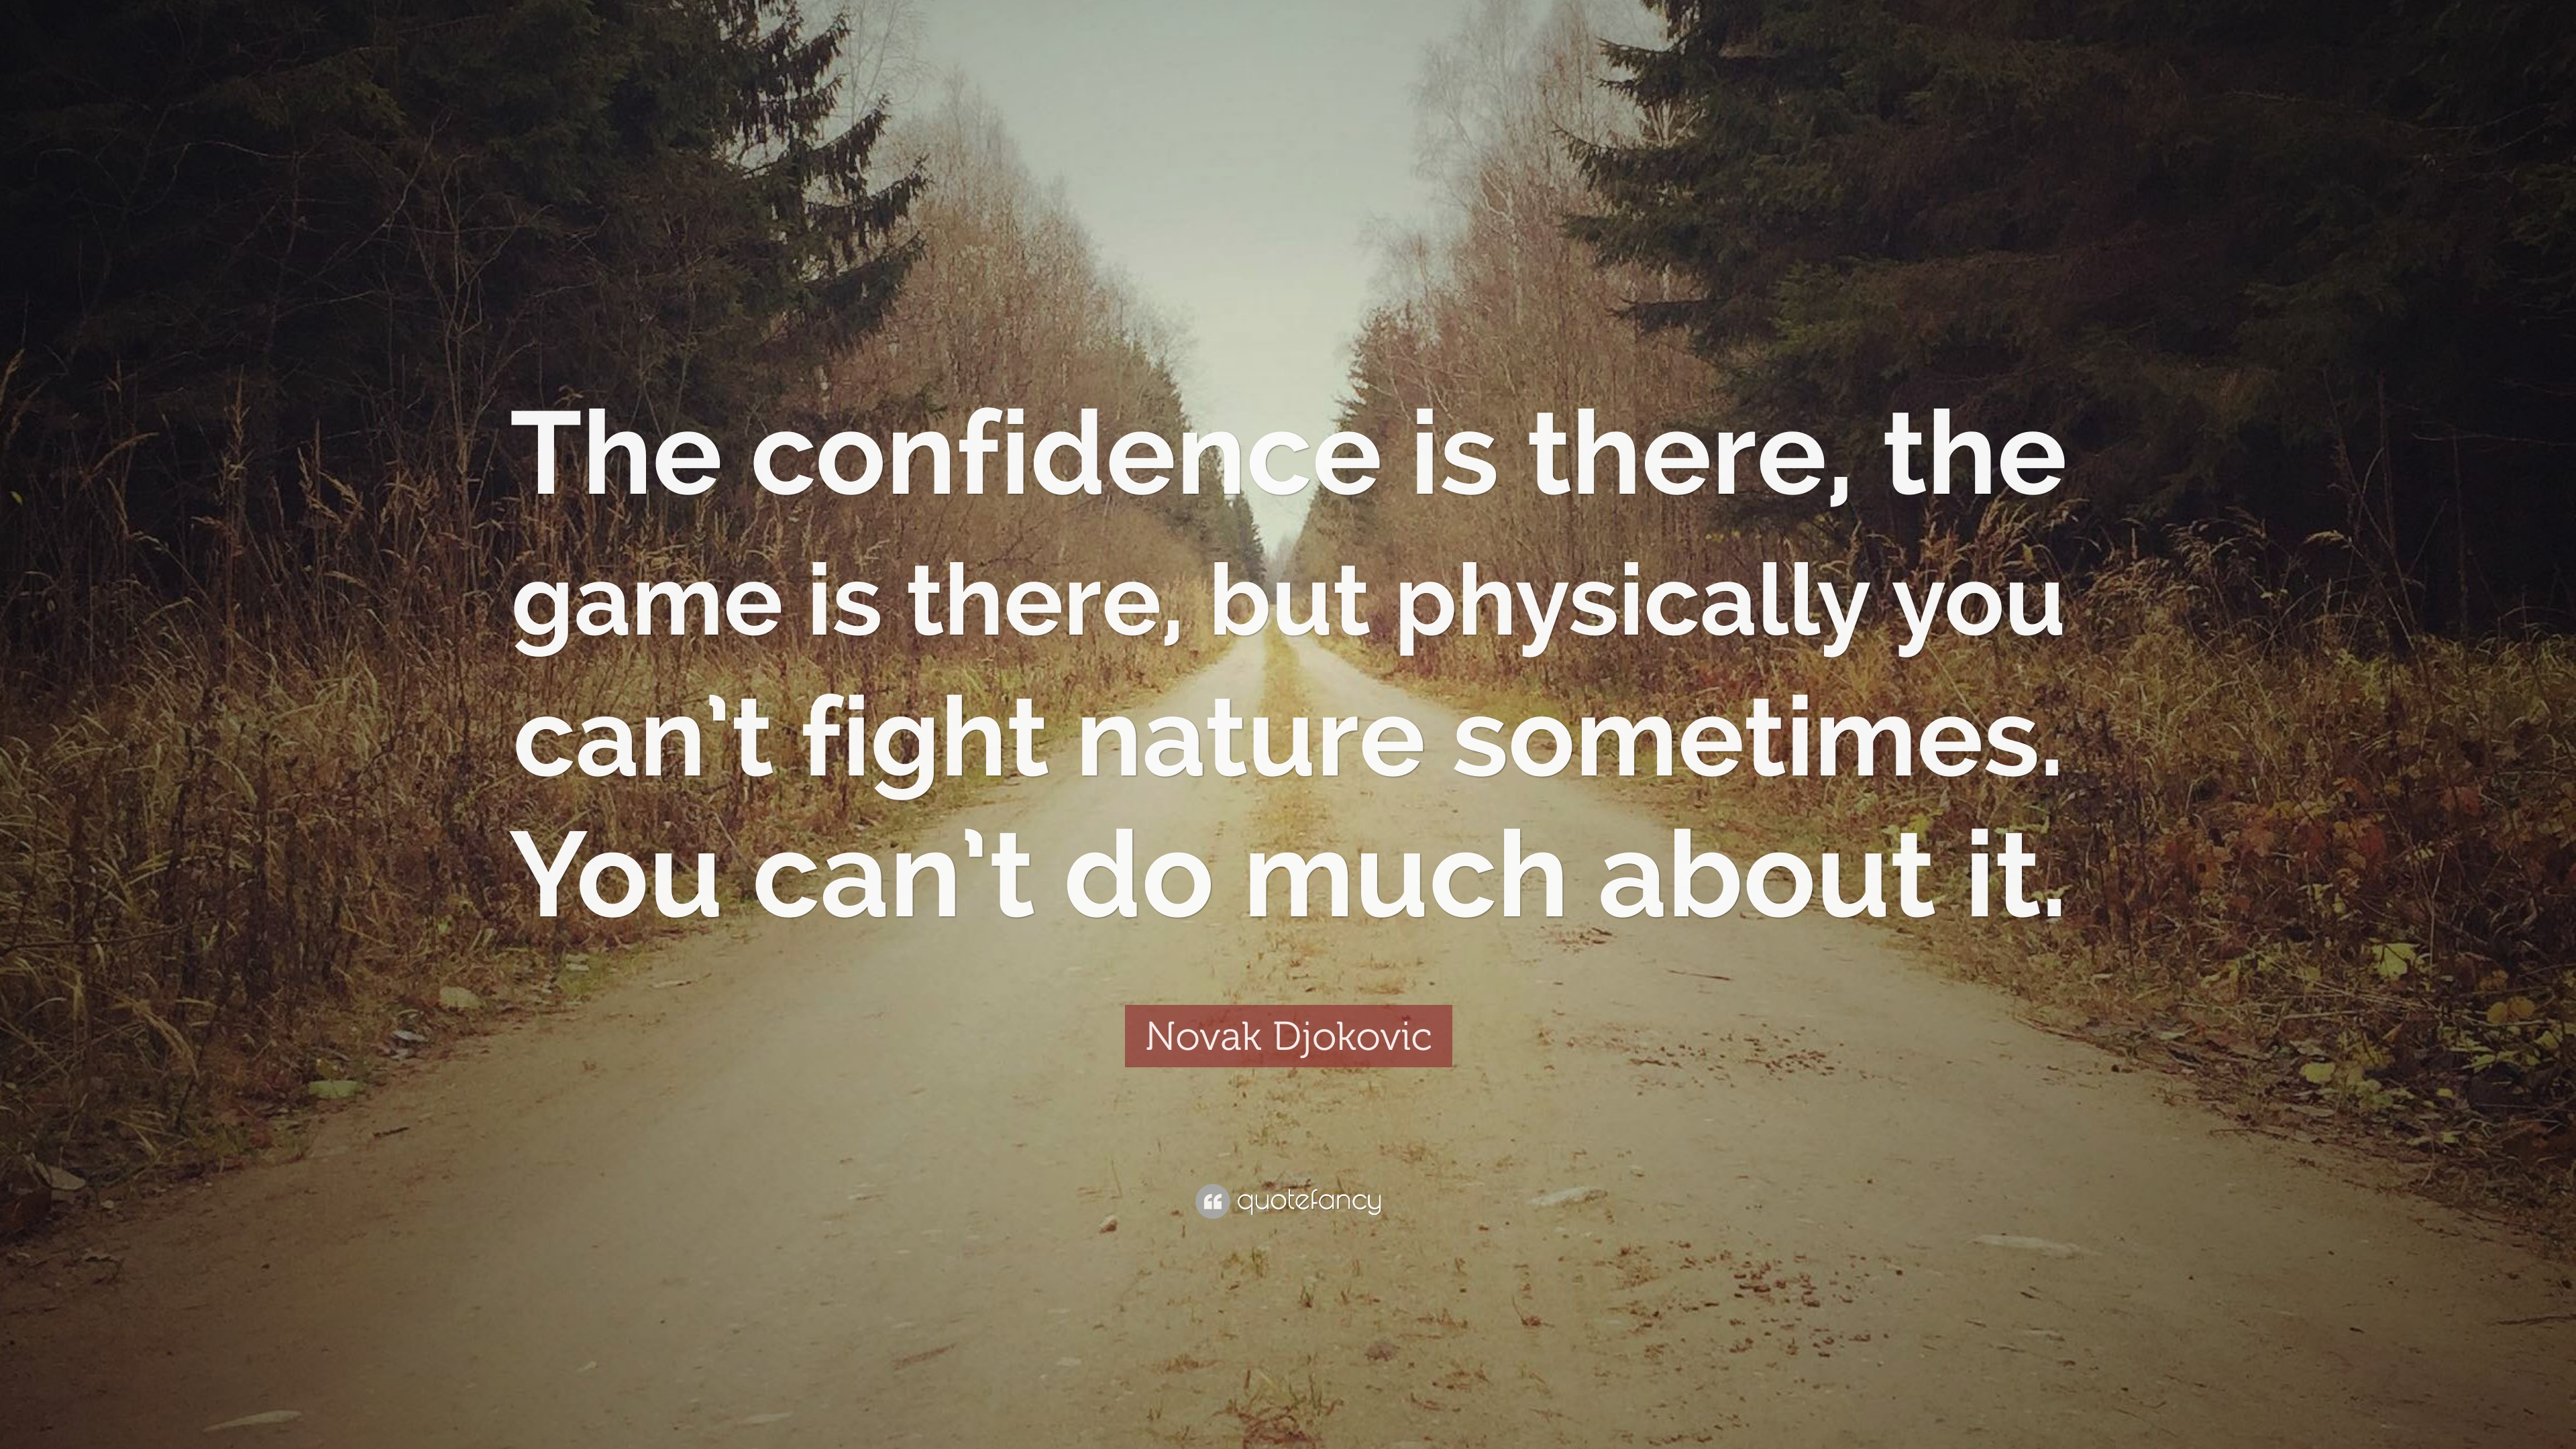 Novak Djokovic Quote The Confidence Is There The Game Is There But Physically You Can T Fight Nature Sometimes You Can T Do Much About It 7 Wallpapers Quotefancy